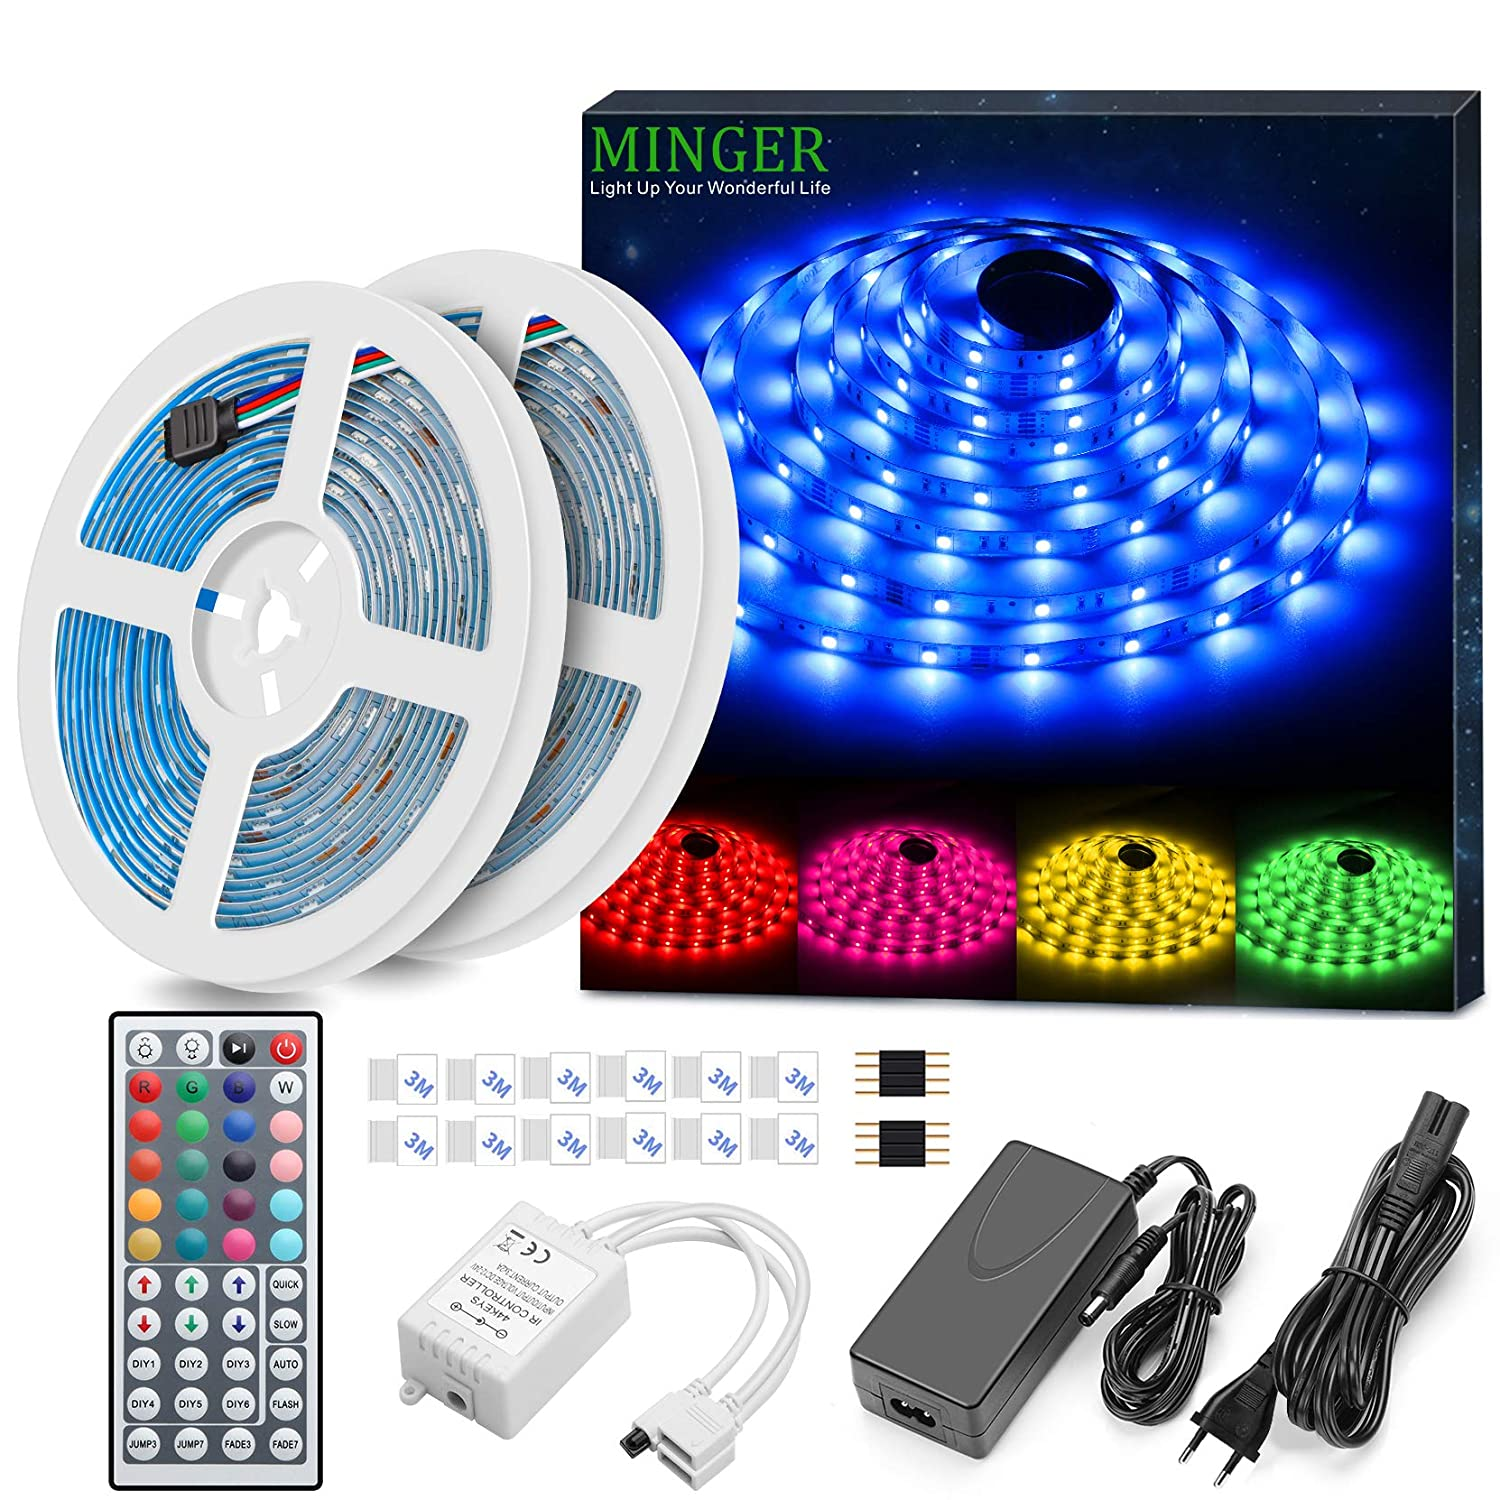 Striscia LED RGB 10M, Minger